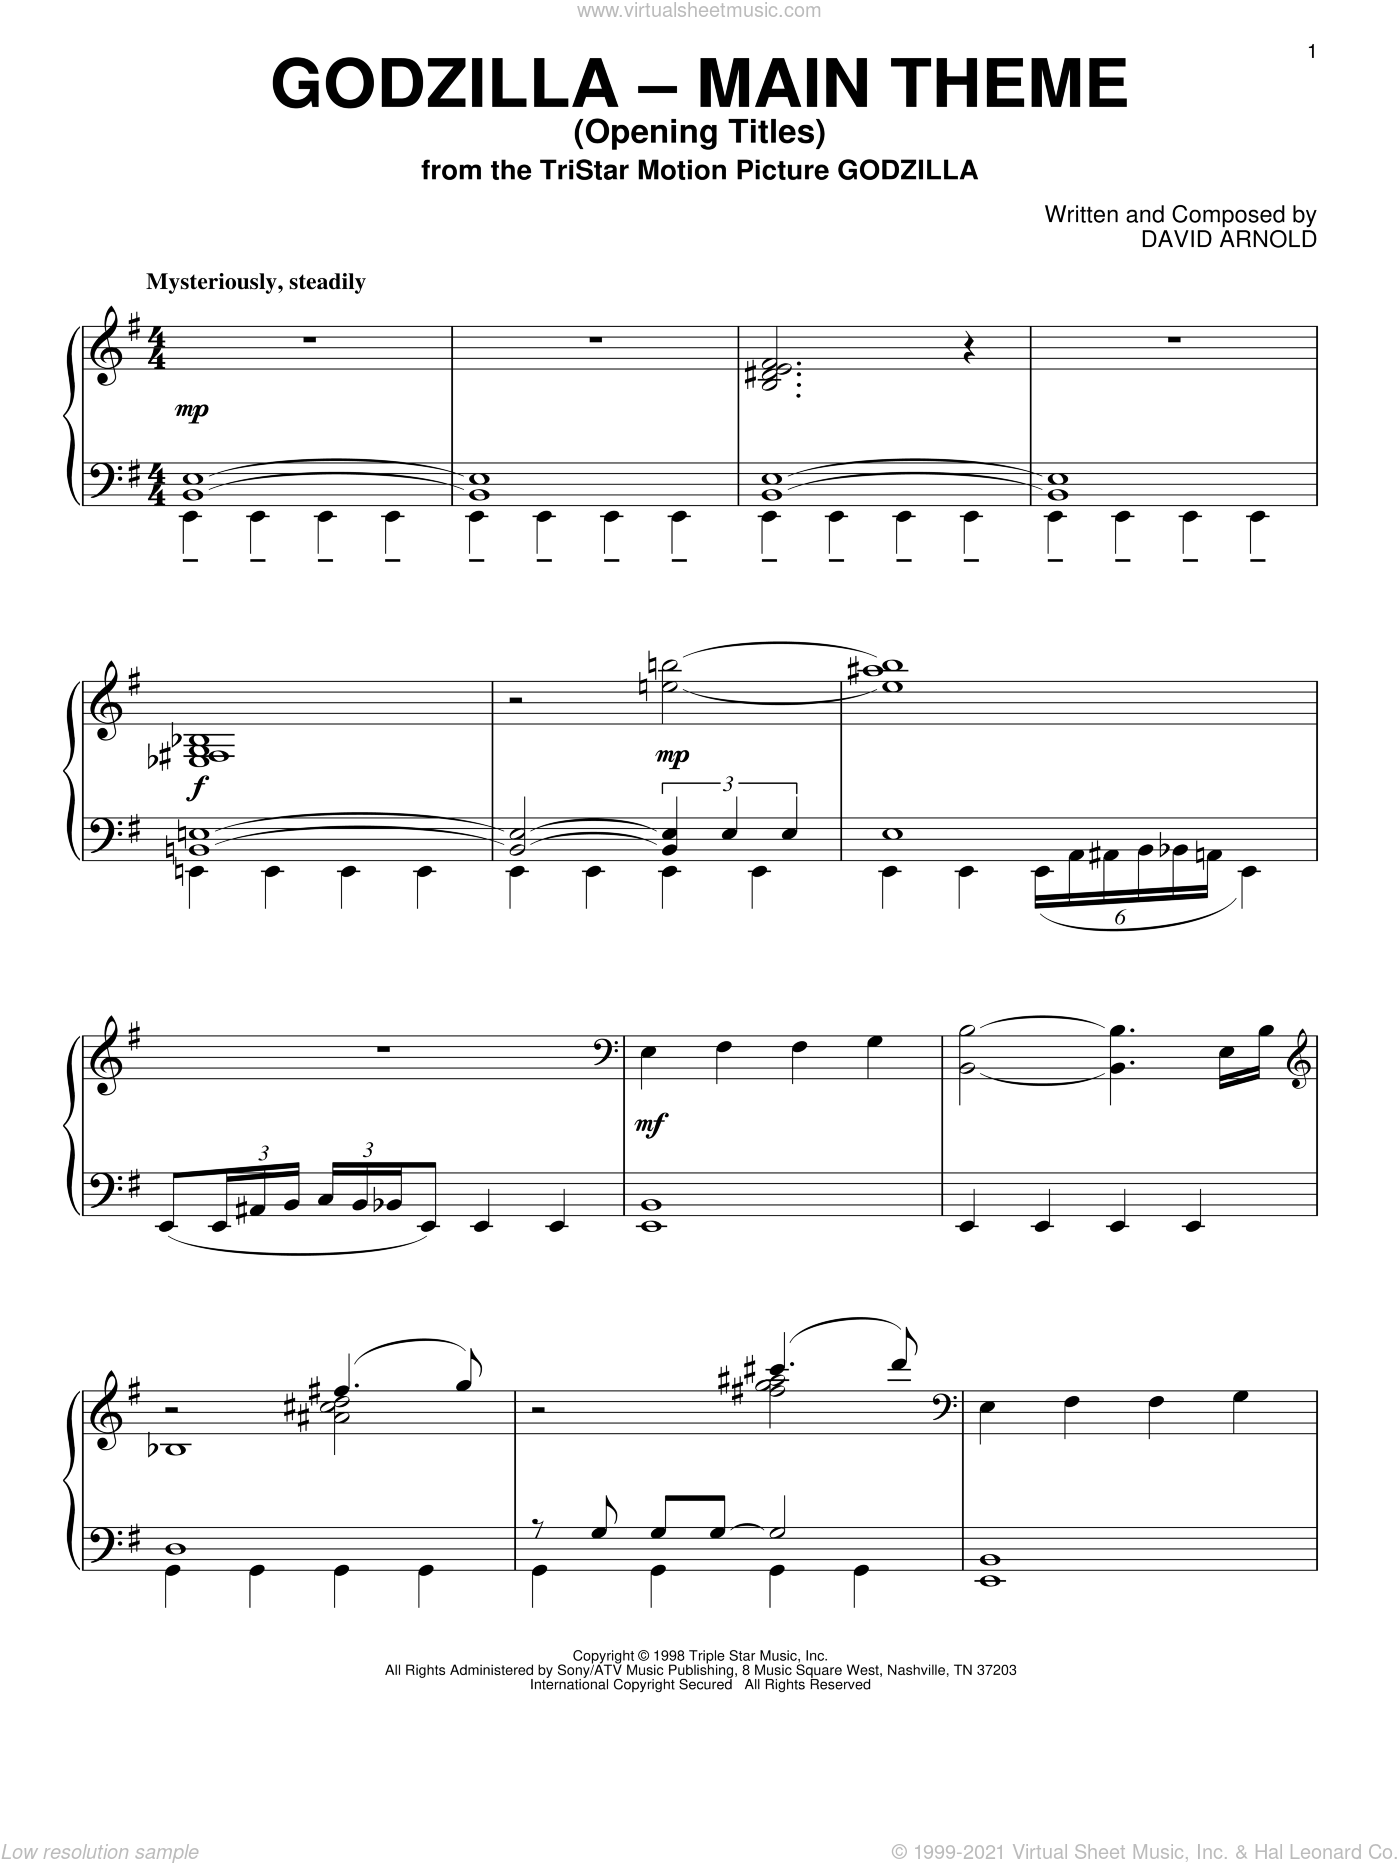 Godzilla - Main Theme (Opening Titles) sheet music for piano solo by David Arnold, intermediate. Score Image Preview.